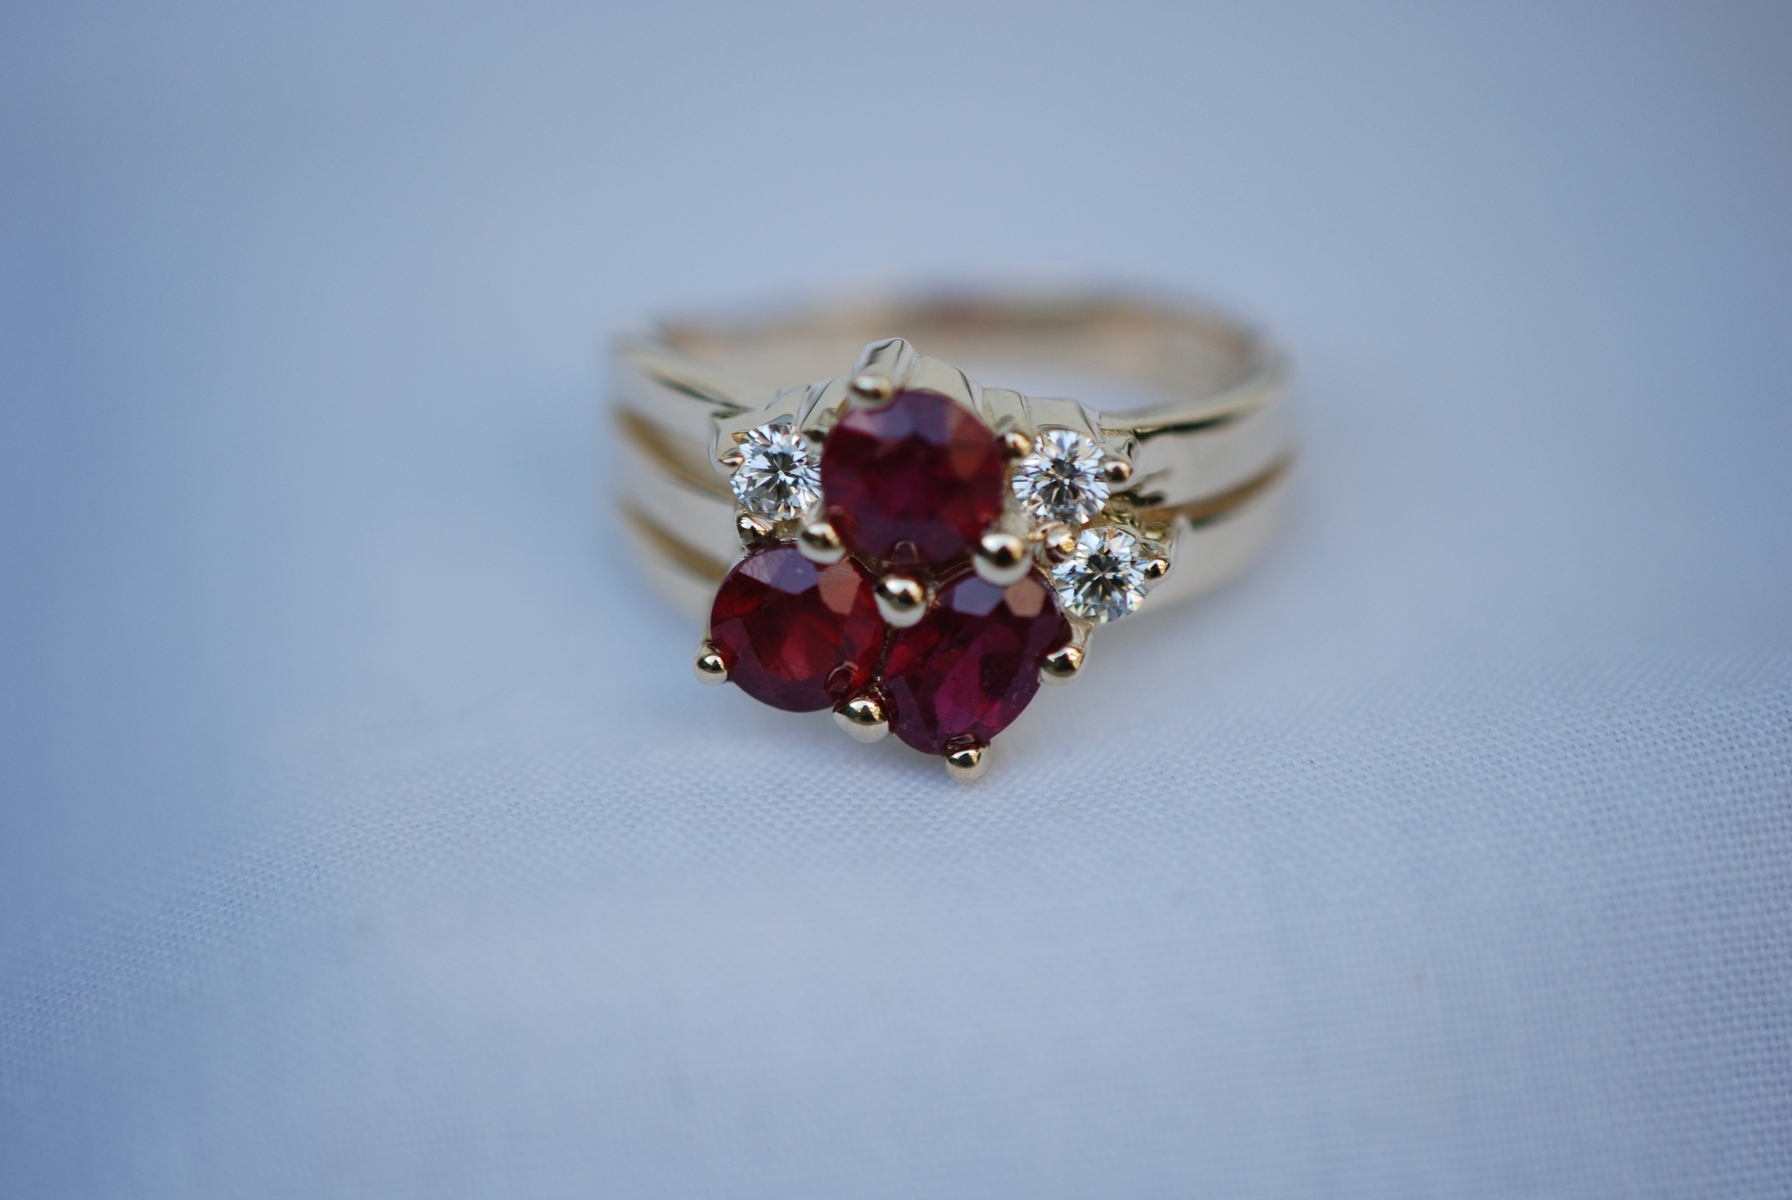 Mark Zuckerberg Designed A Ruby Ring And You Too Can